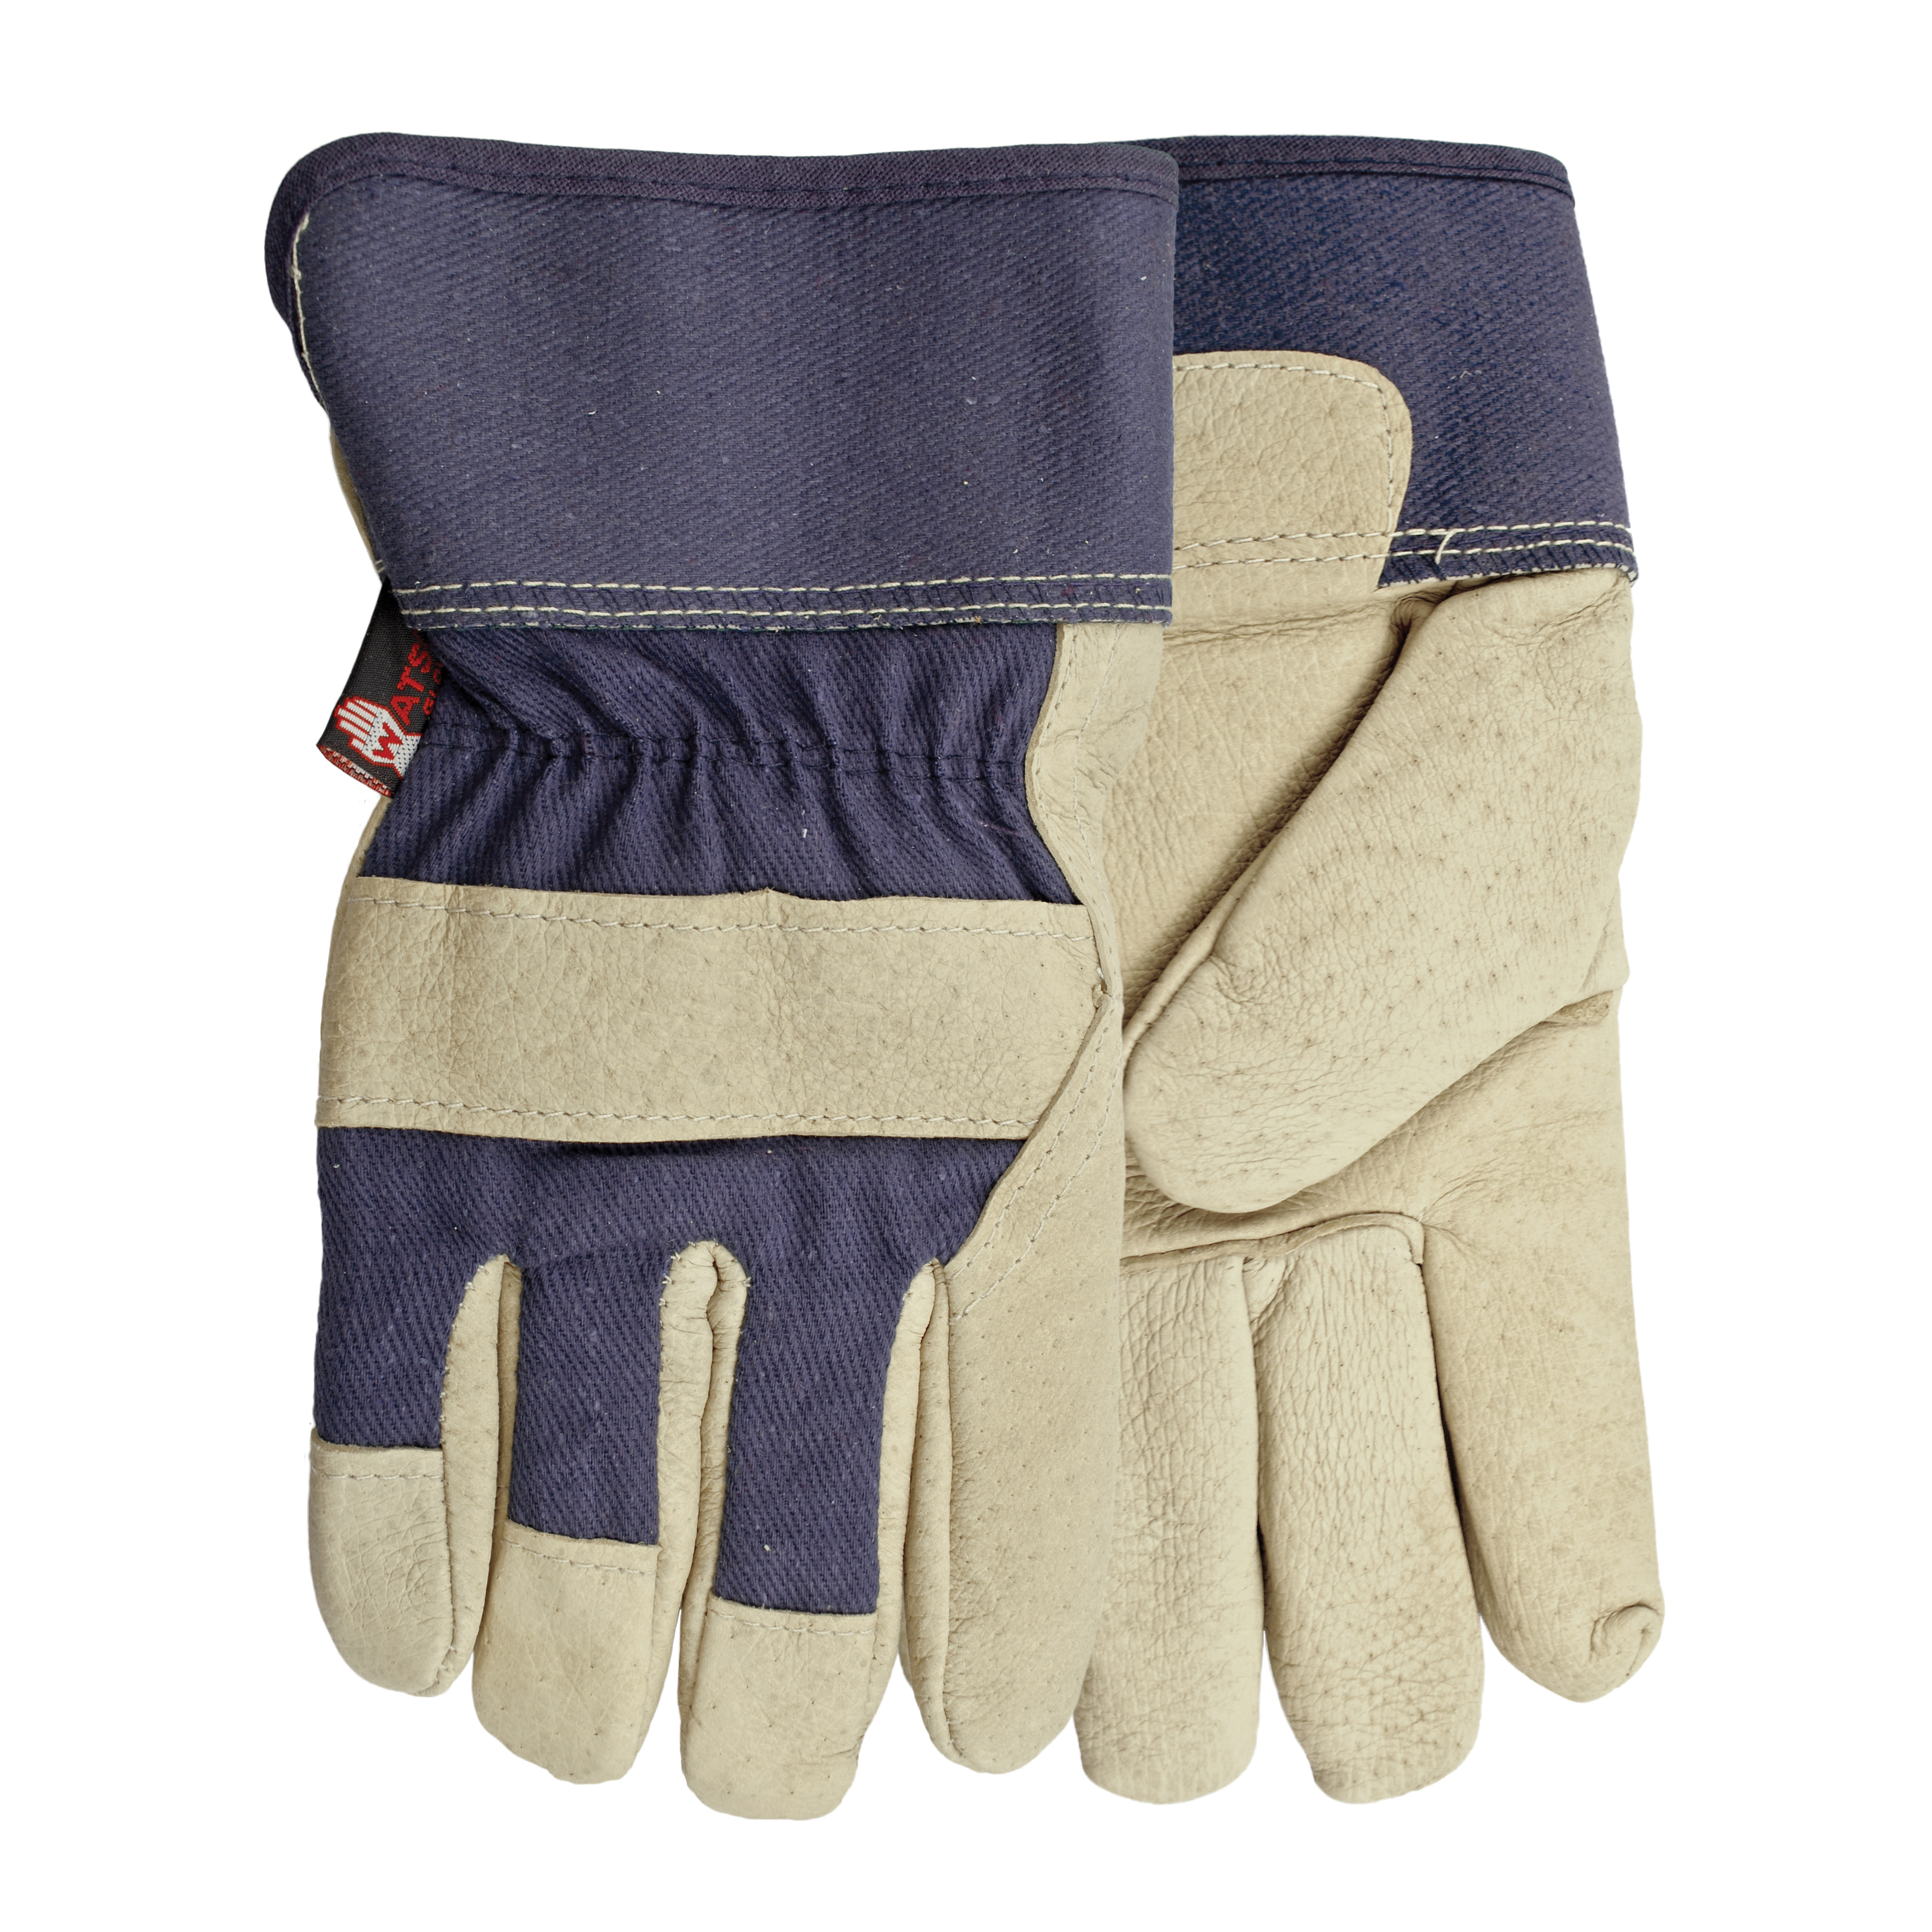 Watson 6266-OS Ms. Liberty Women's General Purpose Gloves 6266, Leather Combo, Hooded Fingertips Style, Universal, Full Grain Pigskin Leather Palm, Cotton/Premium Full Grain Pigskin Leather, Blue, Shirred Elastic/Safety Cuff